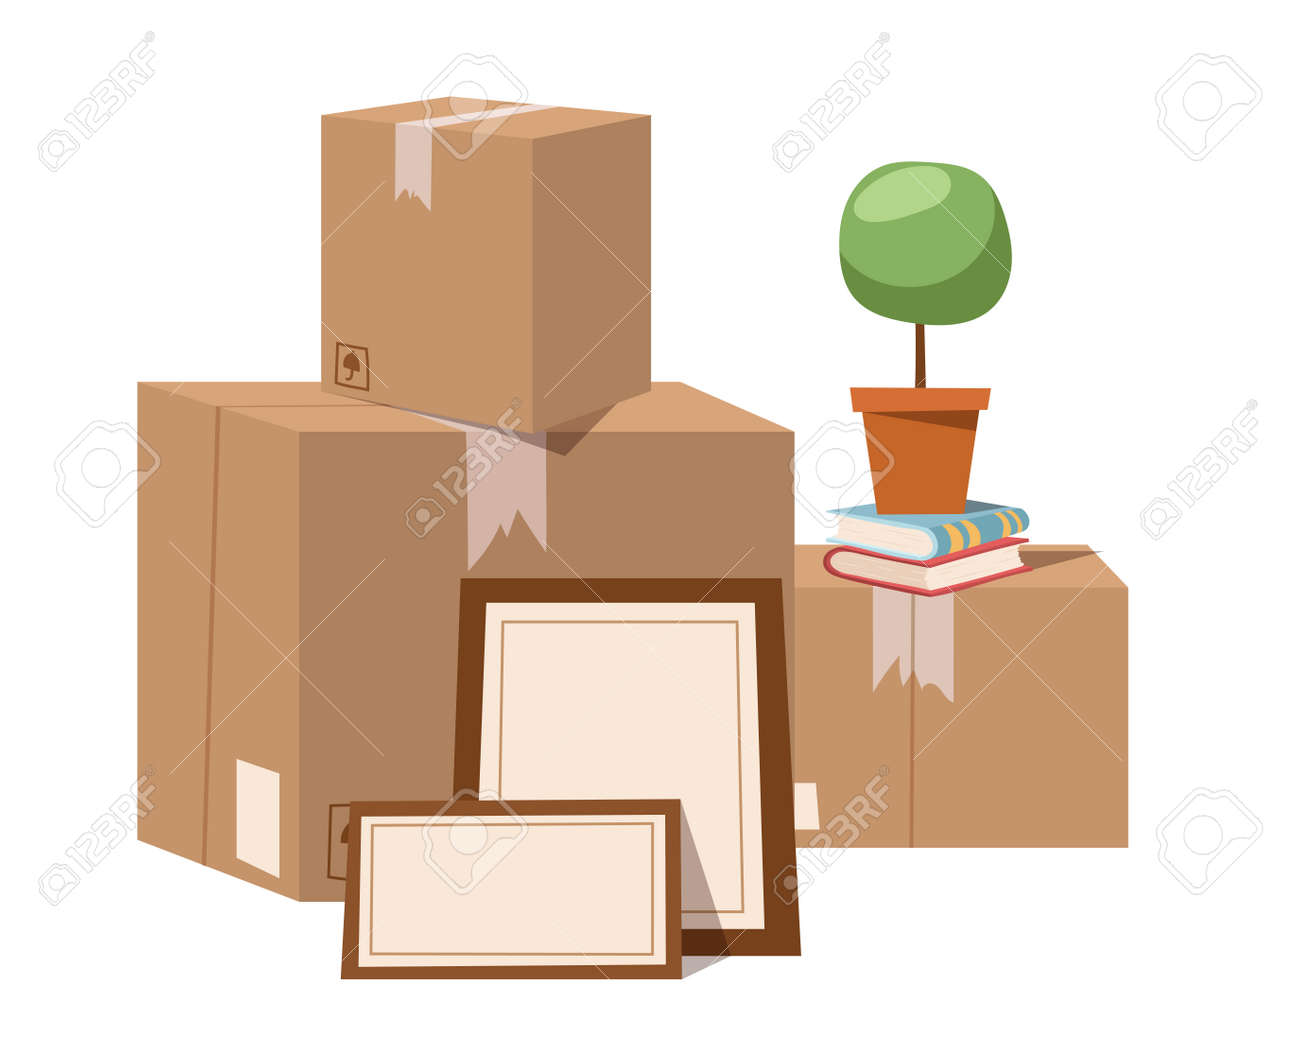 move service box full vector illustration move box business move service box full vector illustration move box business craft box isolated on background